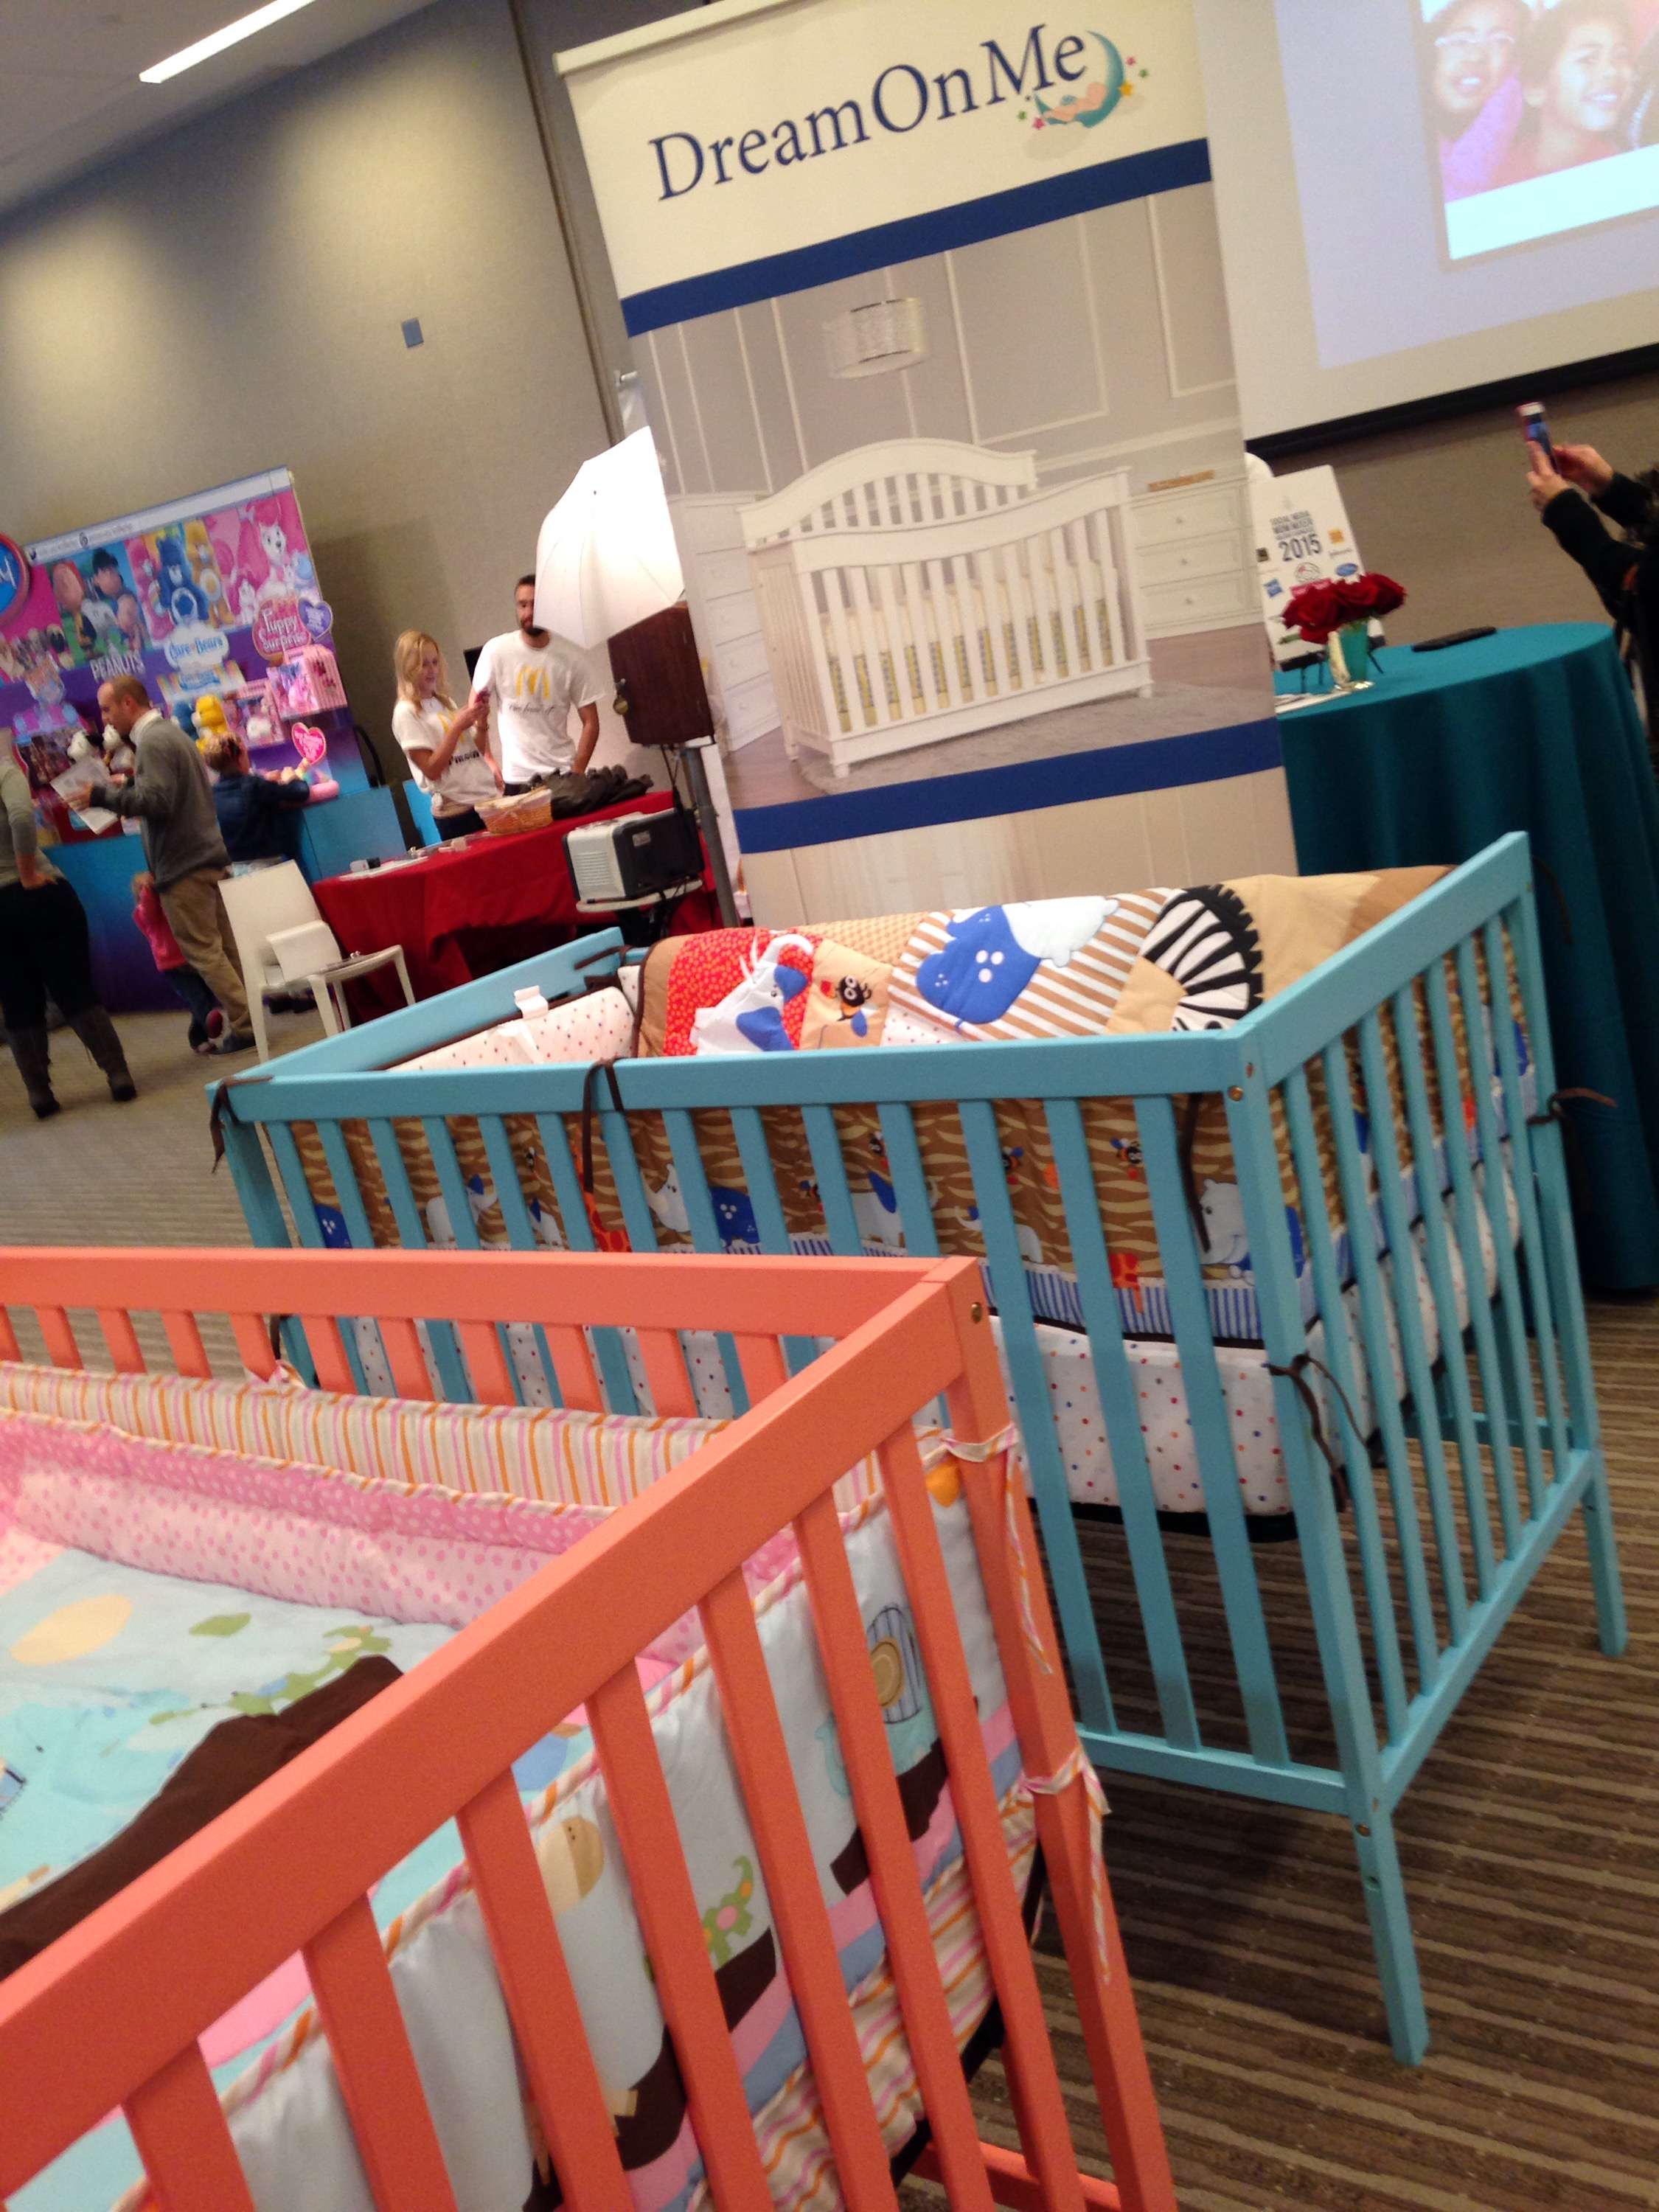 Ordinaire Dream On Me Synergy 5 In 1 Convertible Crib Video Review #MomMixer  @DreamOnMeInc   Classy Mommy